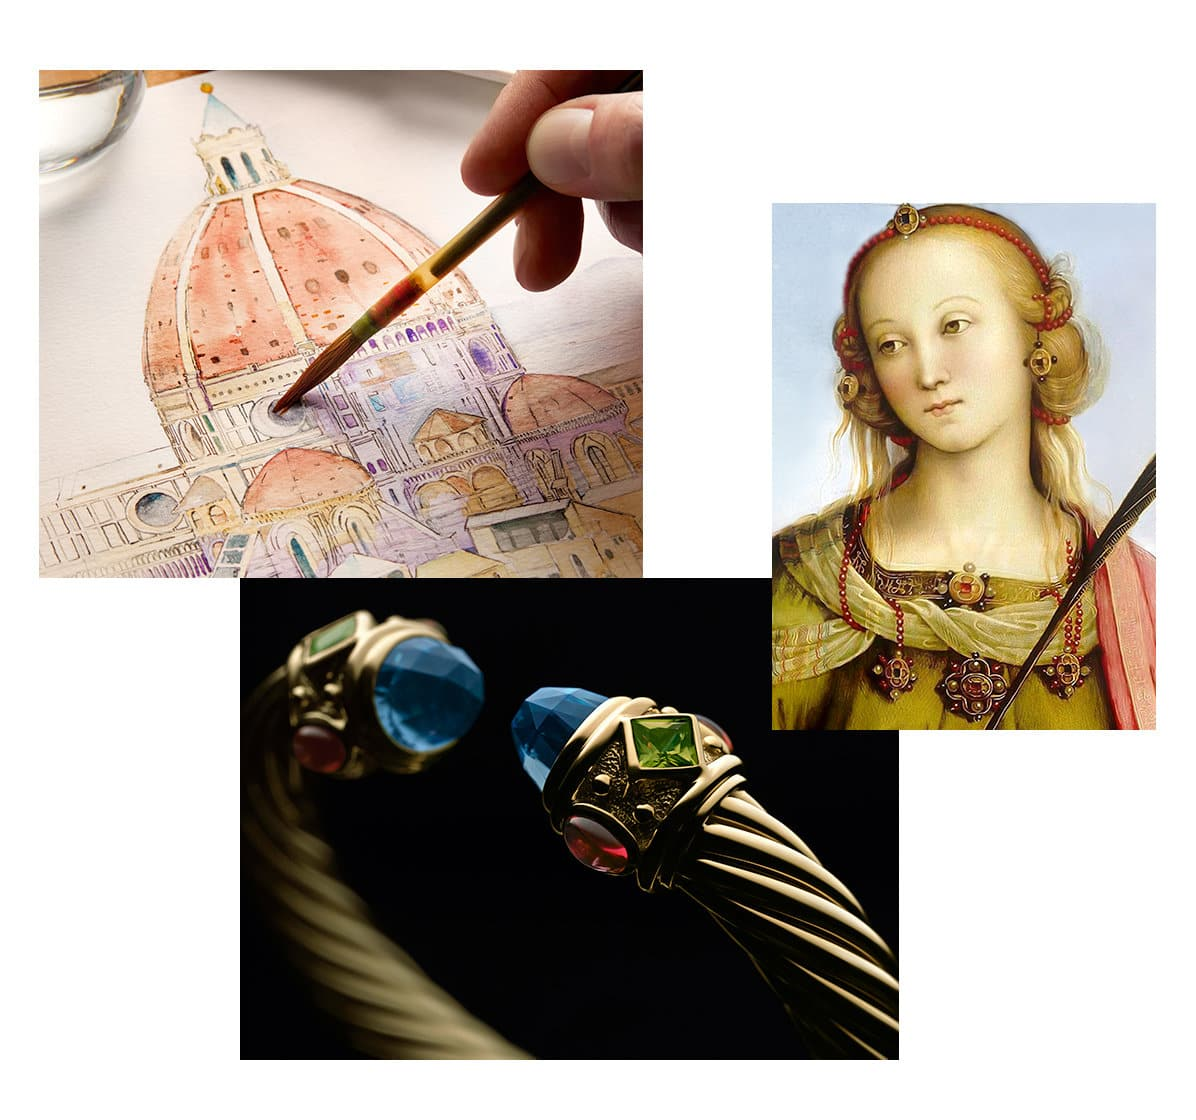 A collage of three images. One photo depicts a hand holding a paintbrush and coloring in a watercolor of a domed building in Italy. One image is of an Italian Renaissance painting of a woman wearing a head ornament, earrings and necklaces. The last image is of the David Yurman Renaissance bracelet in 18K yellow gold with rubies, topaz and green tourmalines.